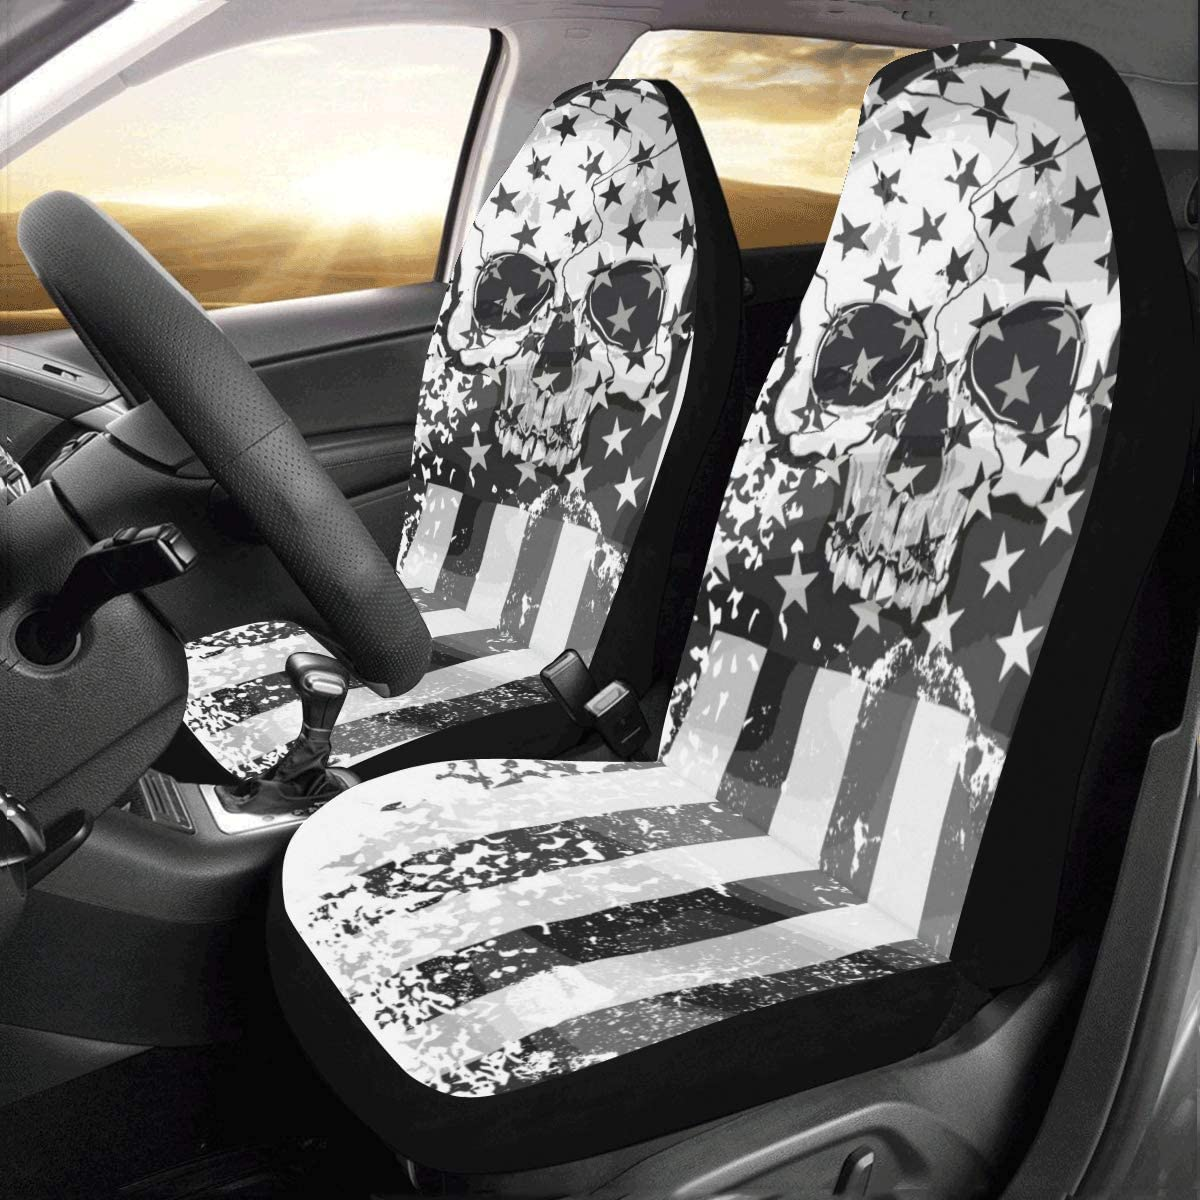 Amazon Com Interestprint Front Car Seat Covers 2 Pcs Skull Flag Vehicle Seat Protector Polyester Cloth Fabric Mat Covers Auto Seat Cushion Universal Fit Most Cars Sedan Truck Suv Van For Women Men